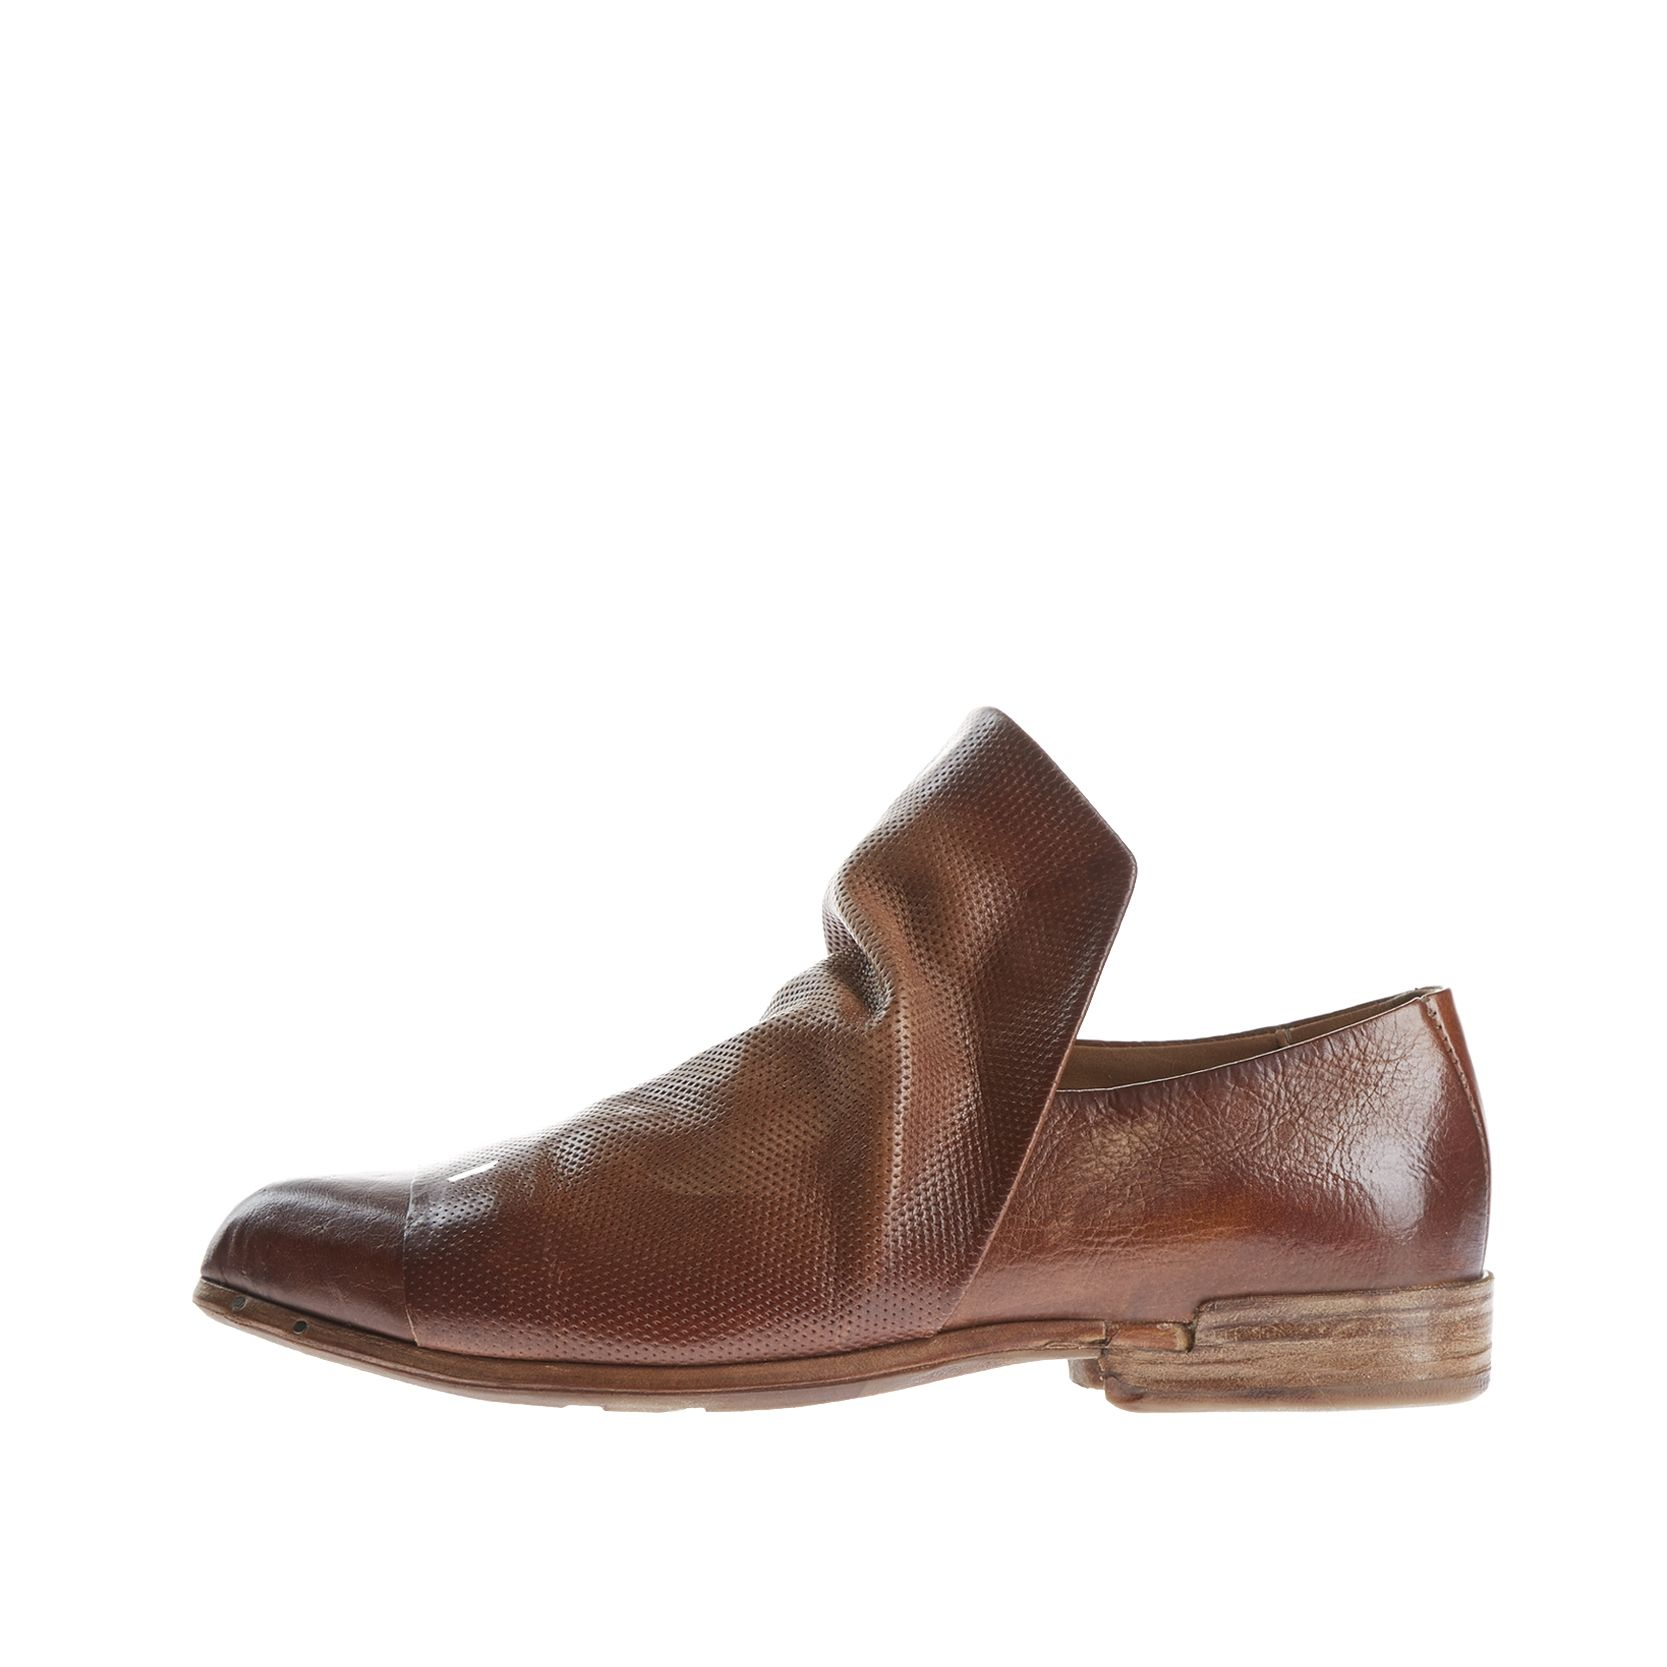 Pointed bootie made of a leather mix. Especially the implied leather gaiter with long leather tongue attracts the attention. The vintage finish of the